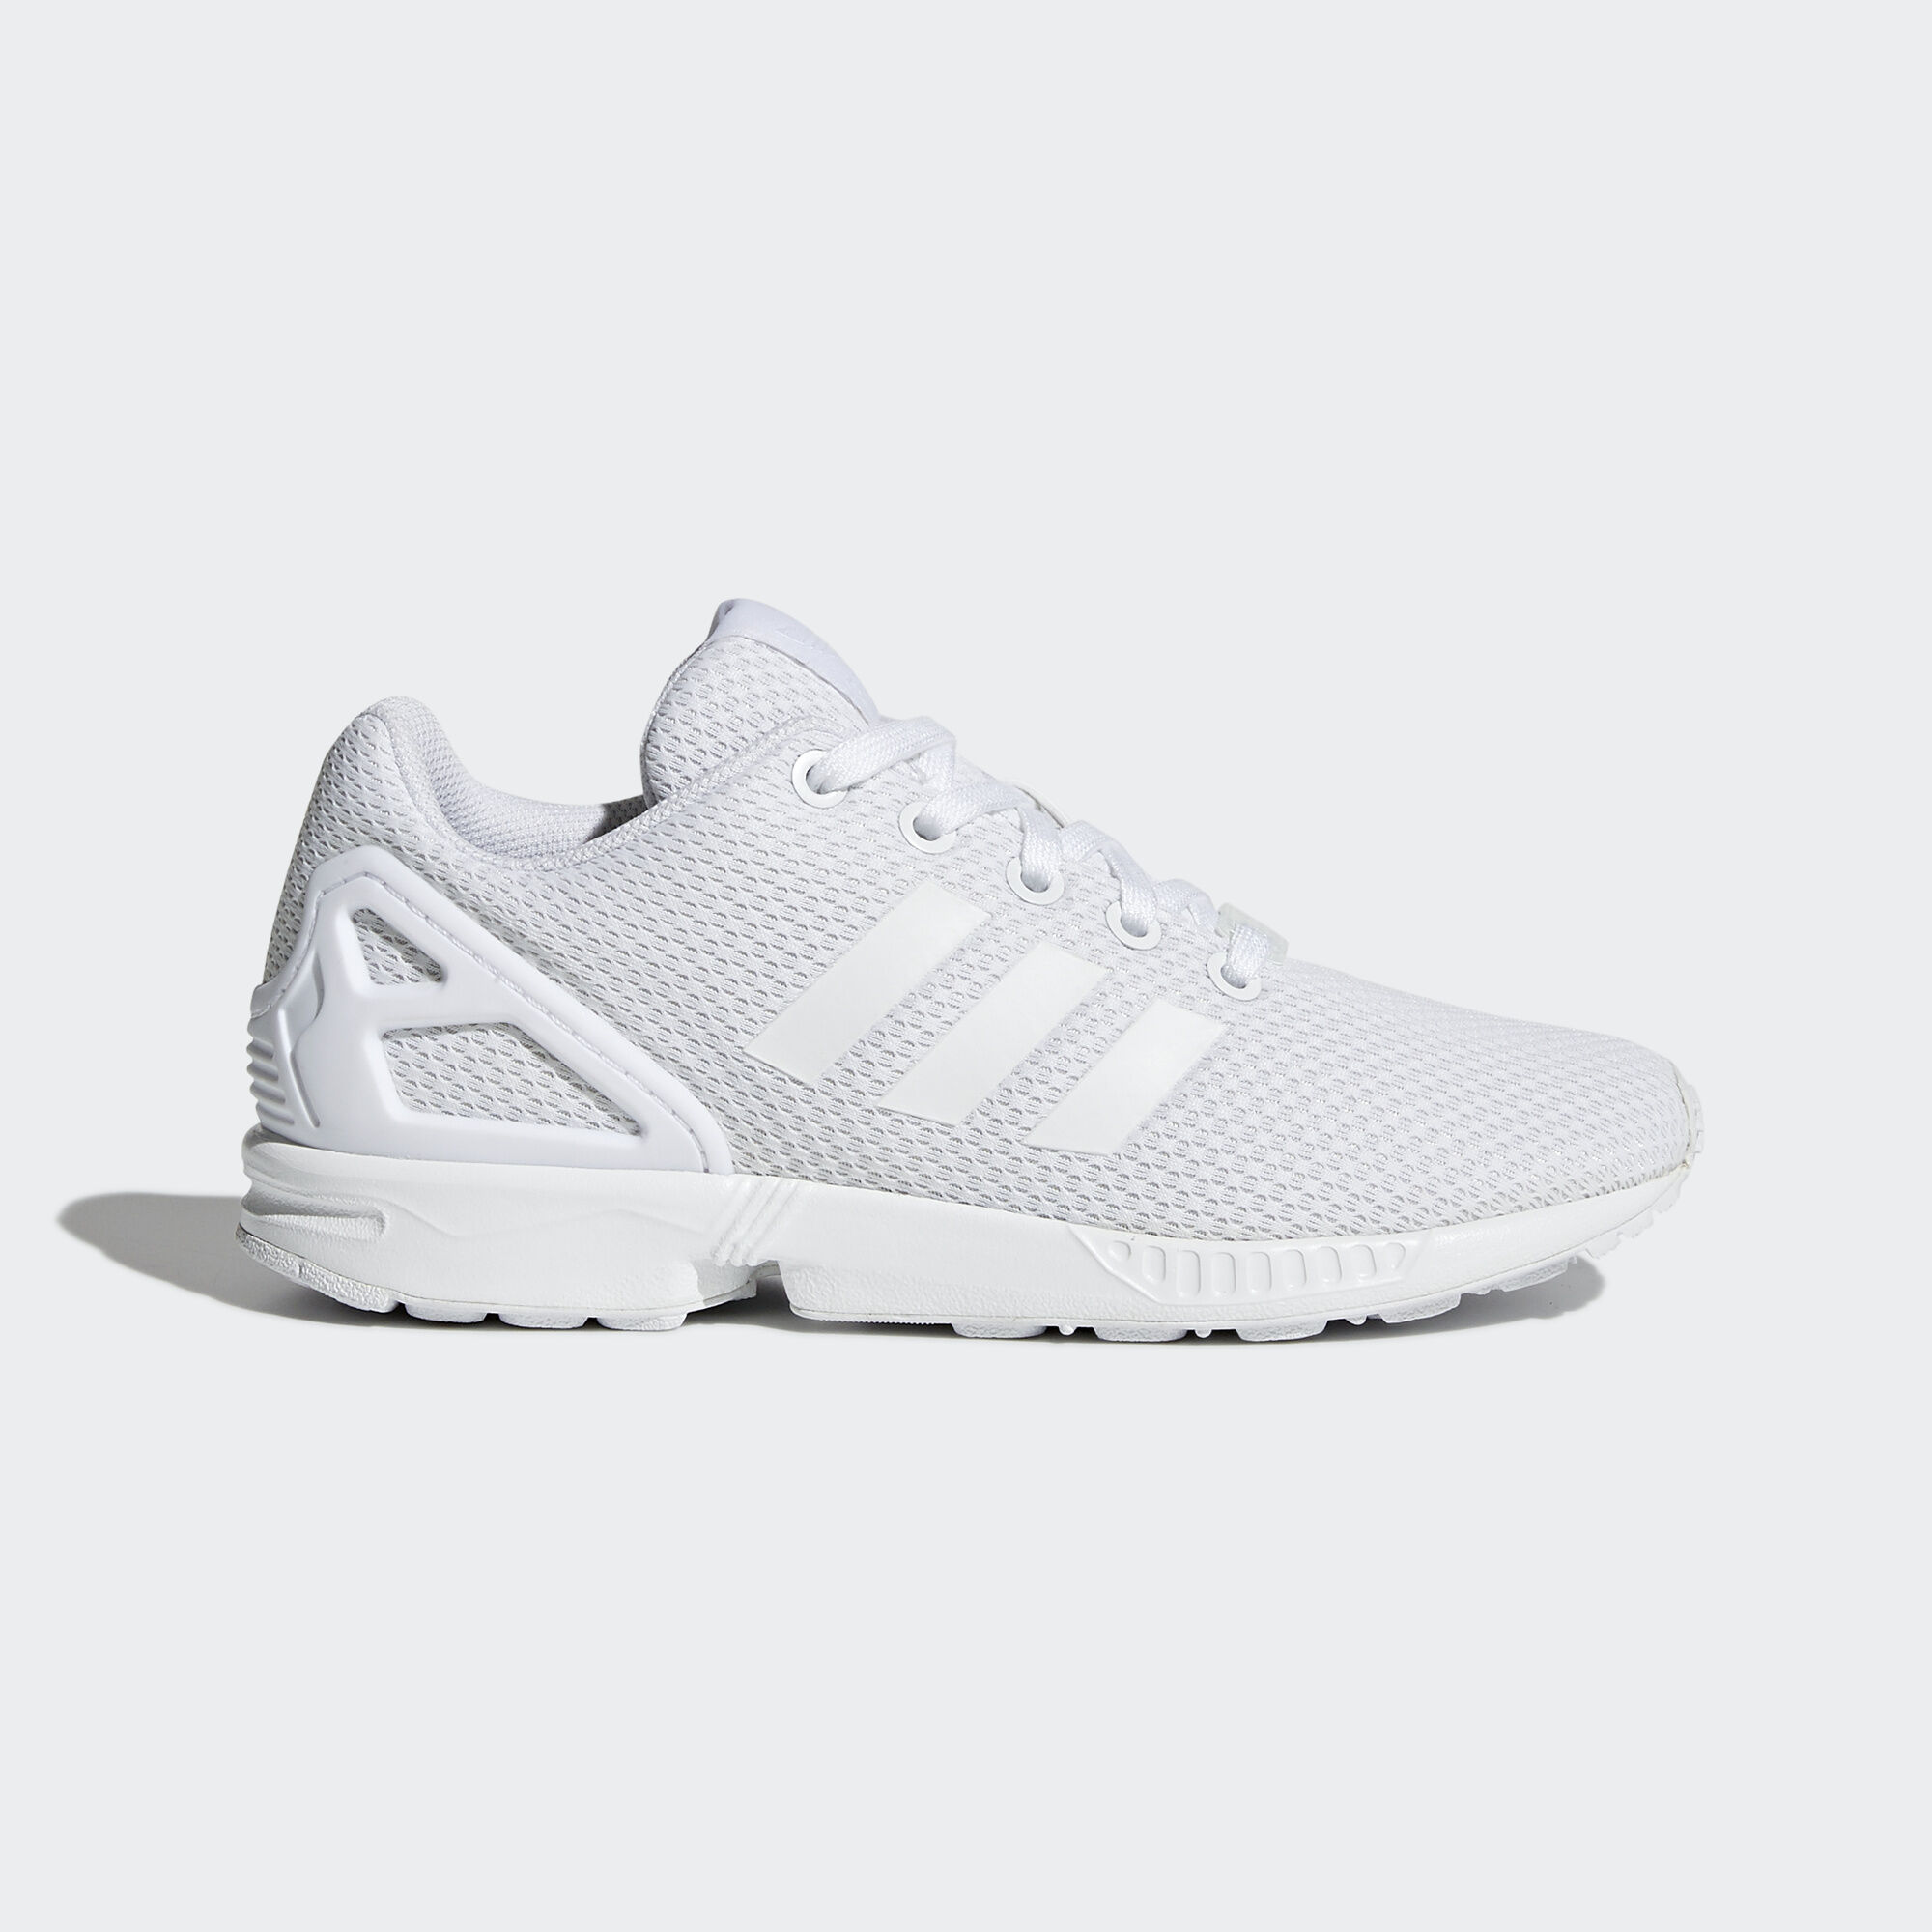 addidas zx flux price